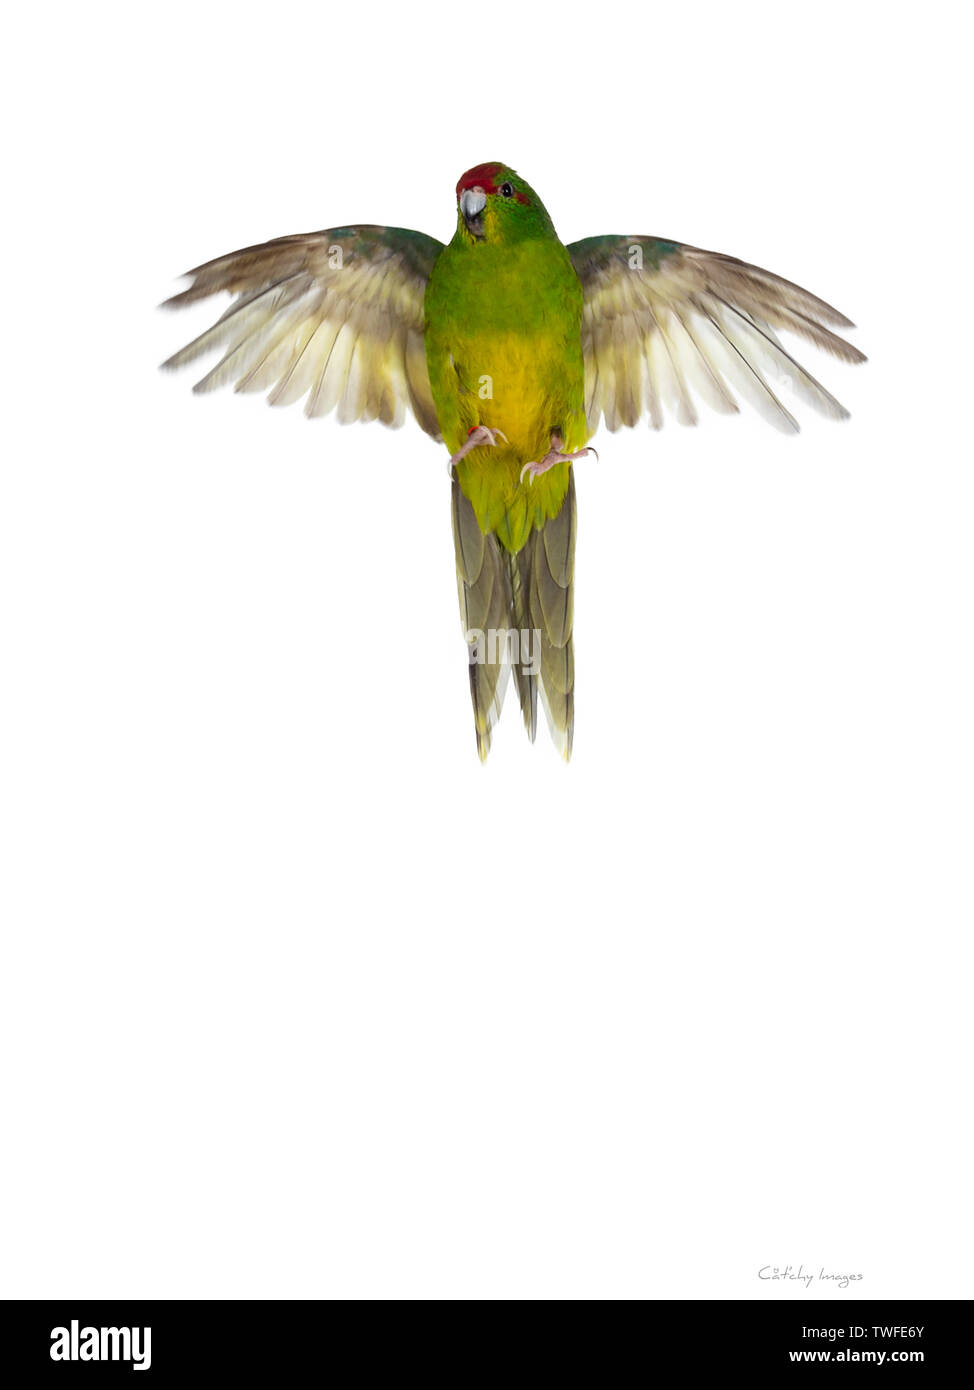 Cute young bright yellow / green Red crowned Kakariki bird. Flying / lift up showing belly. Isolated on white background. - Stock Image